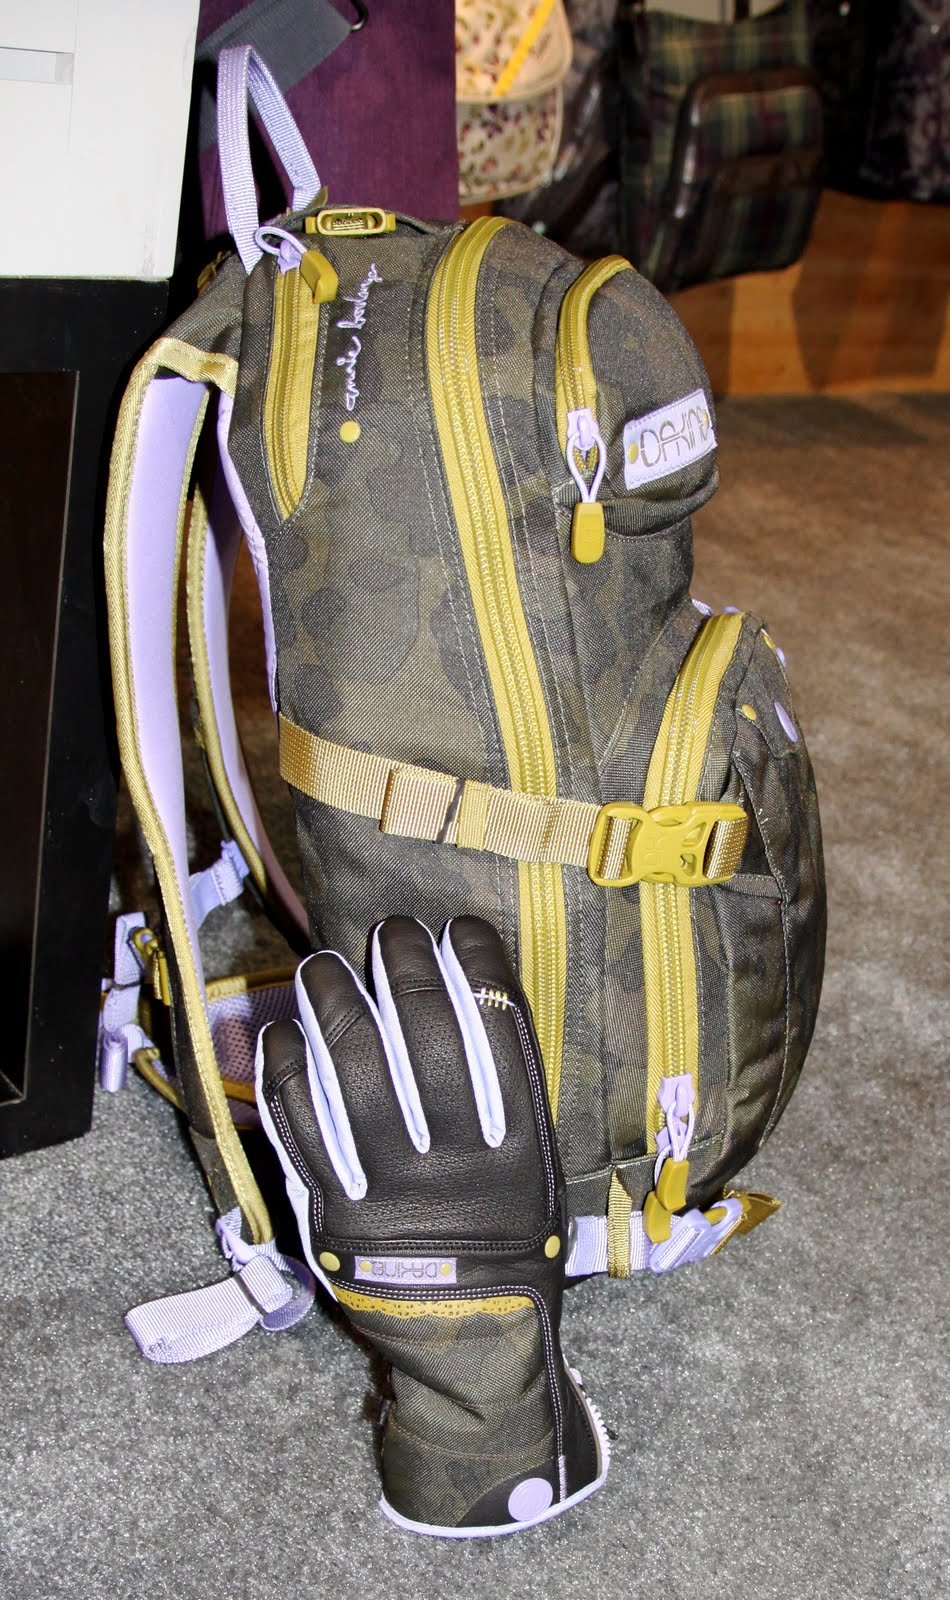 be60cdd6b5242 The Annie Boulanger Team Heli Pro is a pack with nice girly lace  fridge---but also has the features hard core snow shredders  need---contoured harness to fit ...